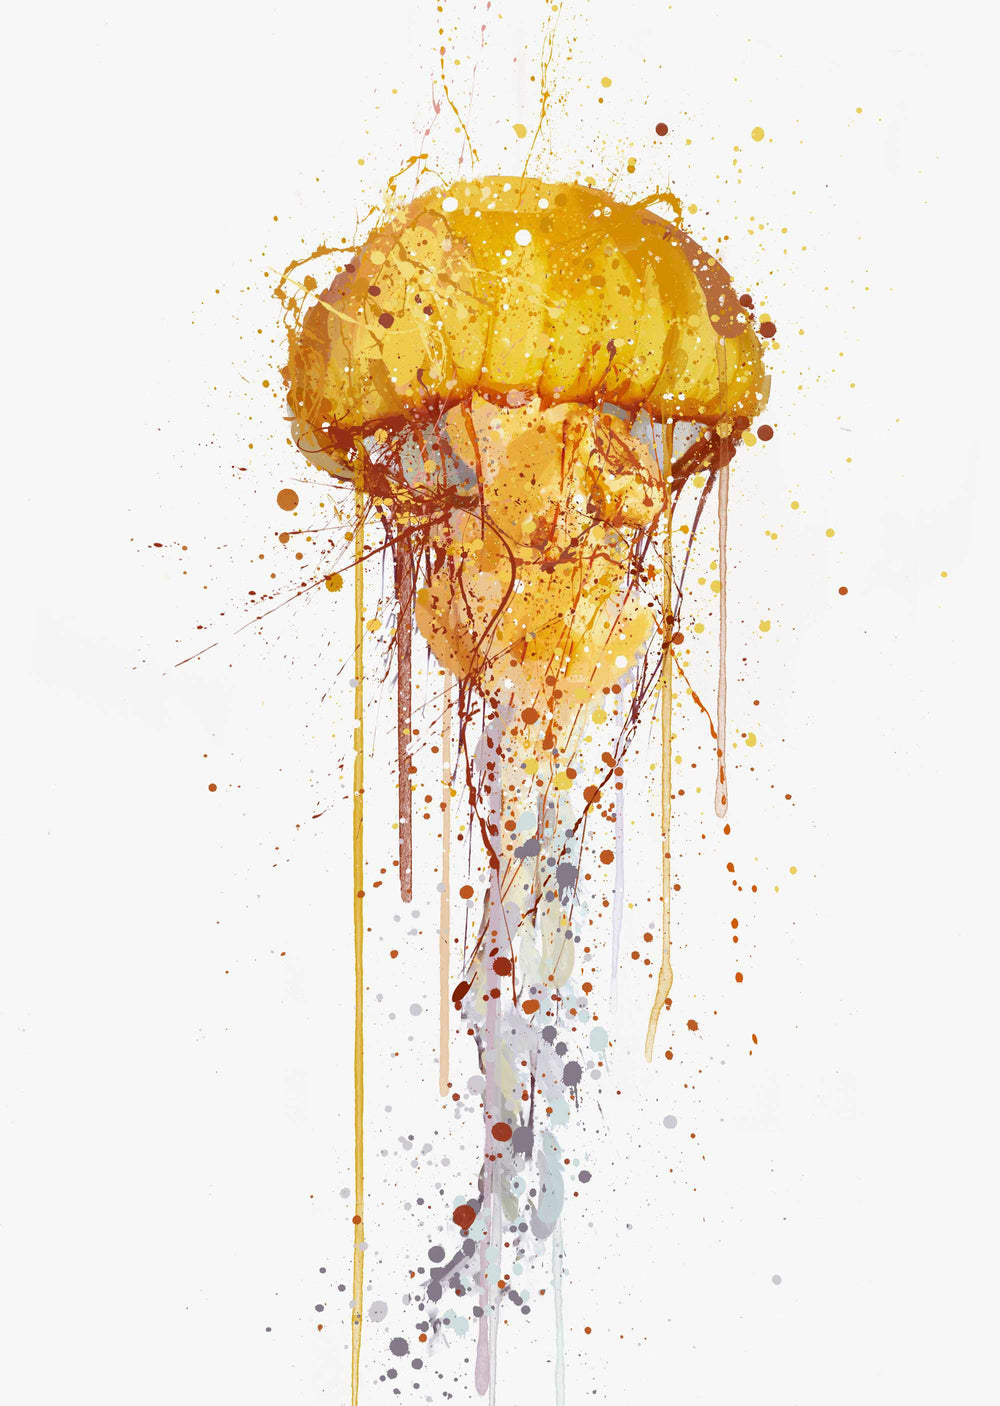 Sea Creature Wall Art Print 'Jellyfish'-We Love Prints